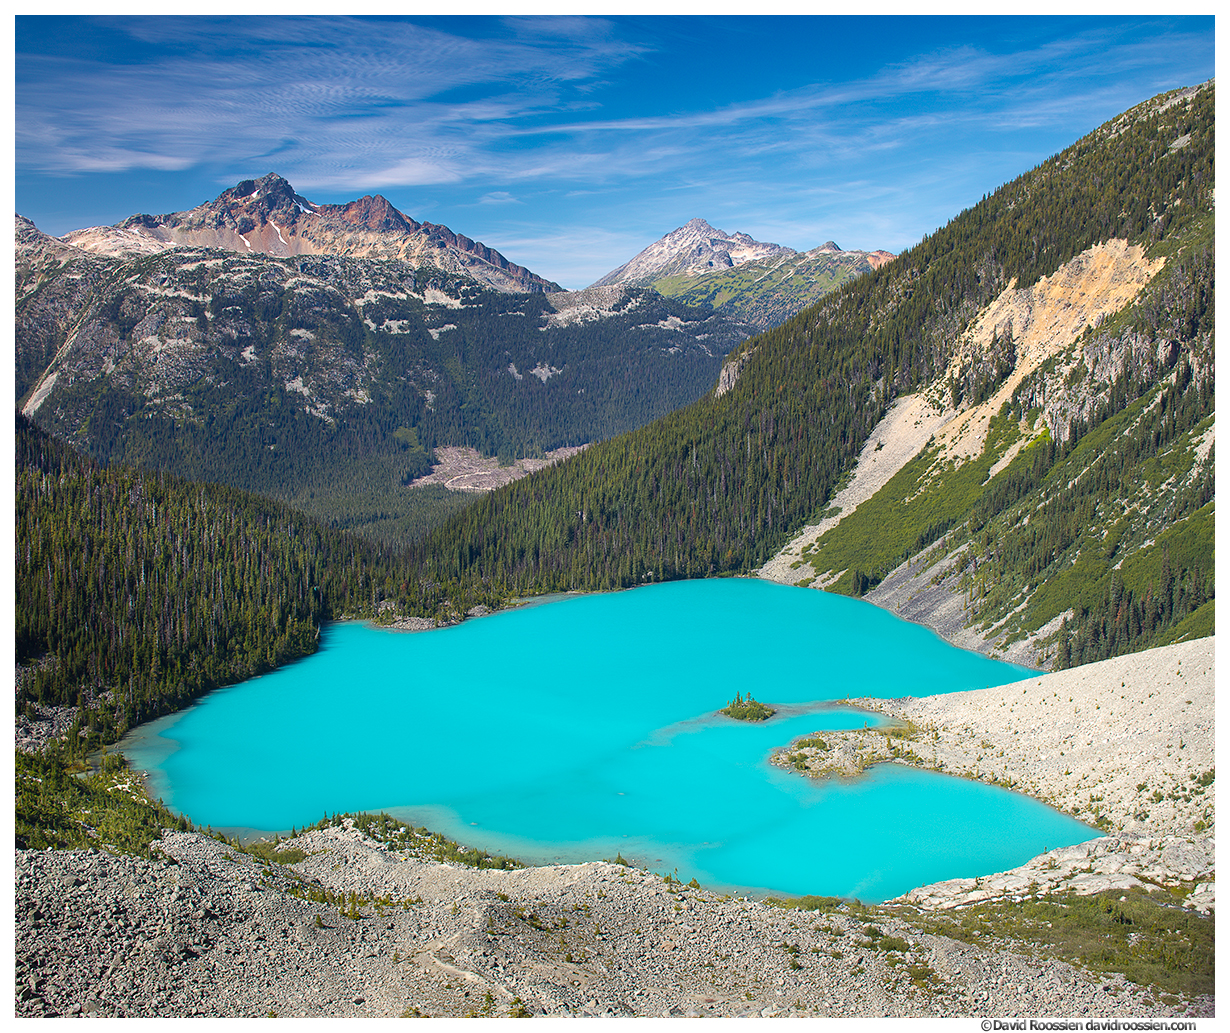 Upper Joffre Lake From Joffre Glacier, British Columbia, Canada